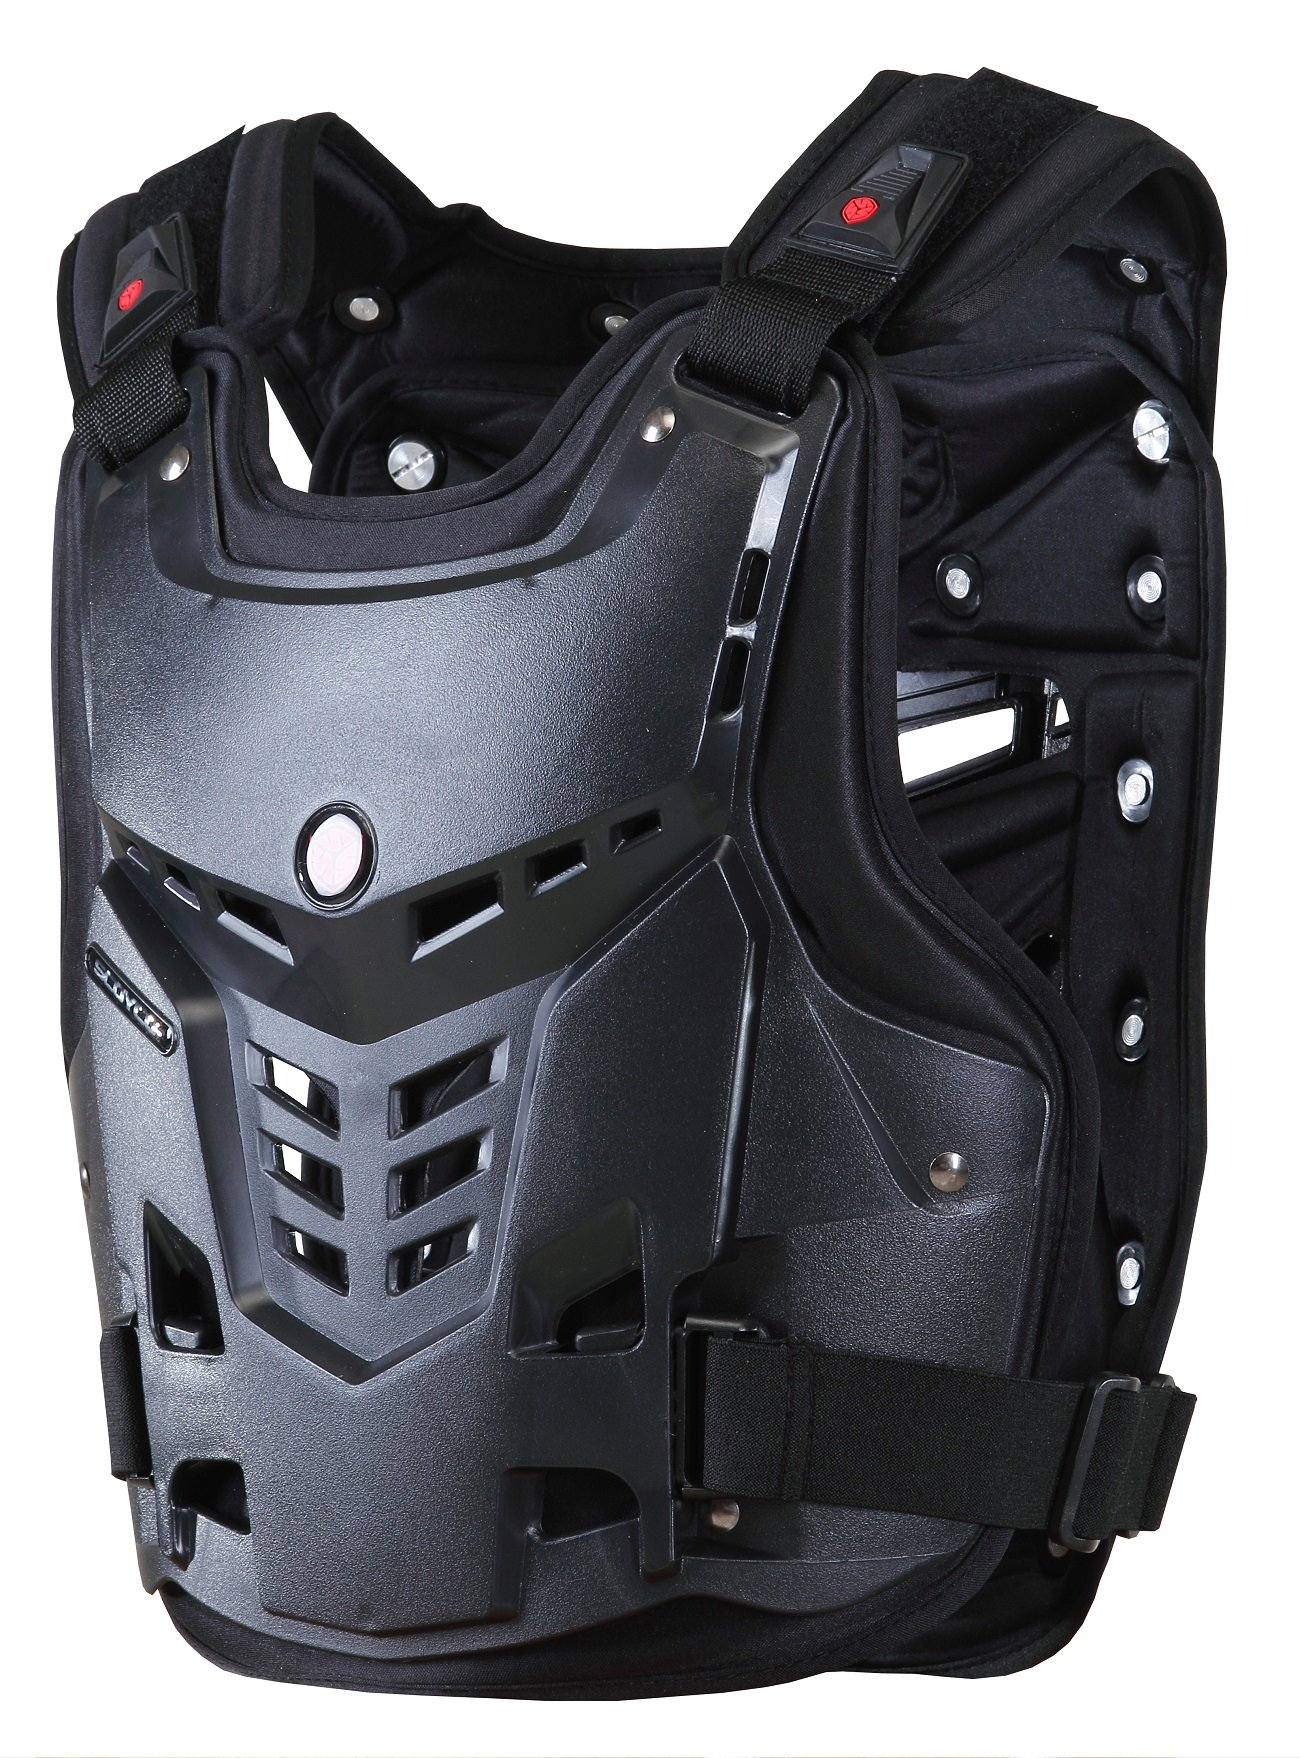 CRAZY AL'S CAM05 Body Armor Professional Motorcycle Motocross Racing Chest and Back Protector Motobike Bicycle Cycling Riding Motocross Gear Black White M/L/XL (Black, M)